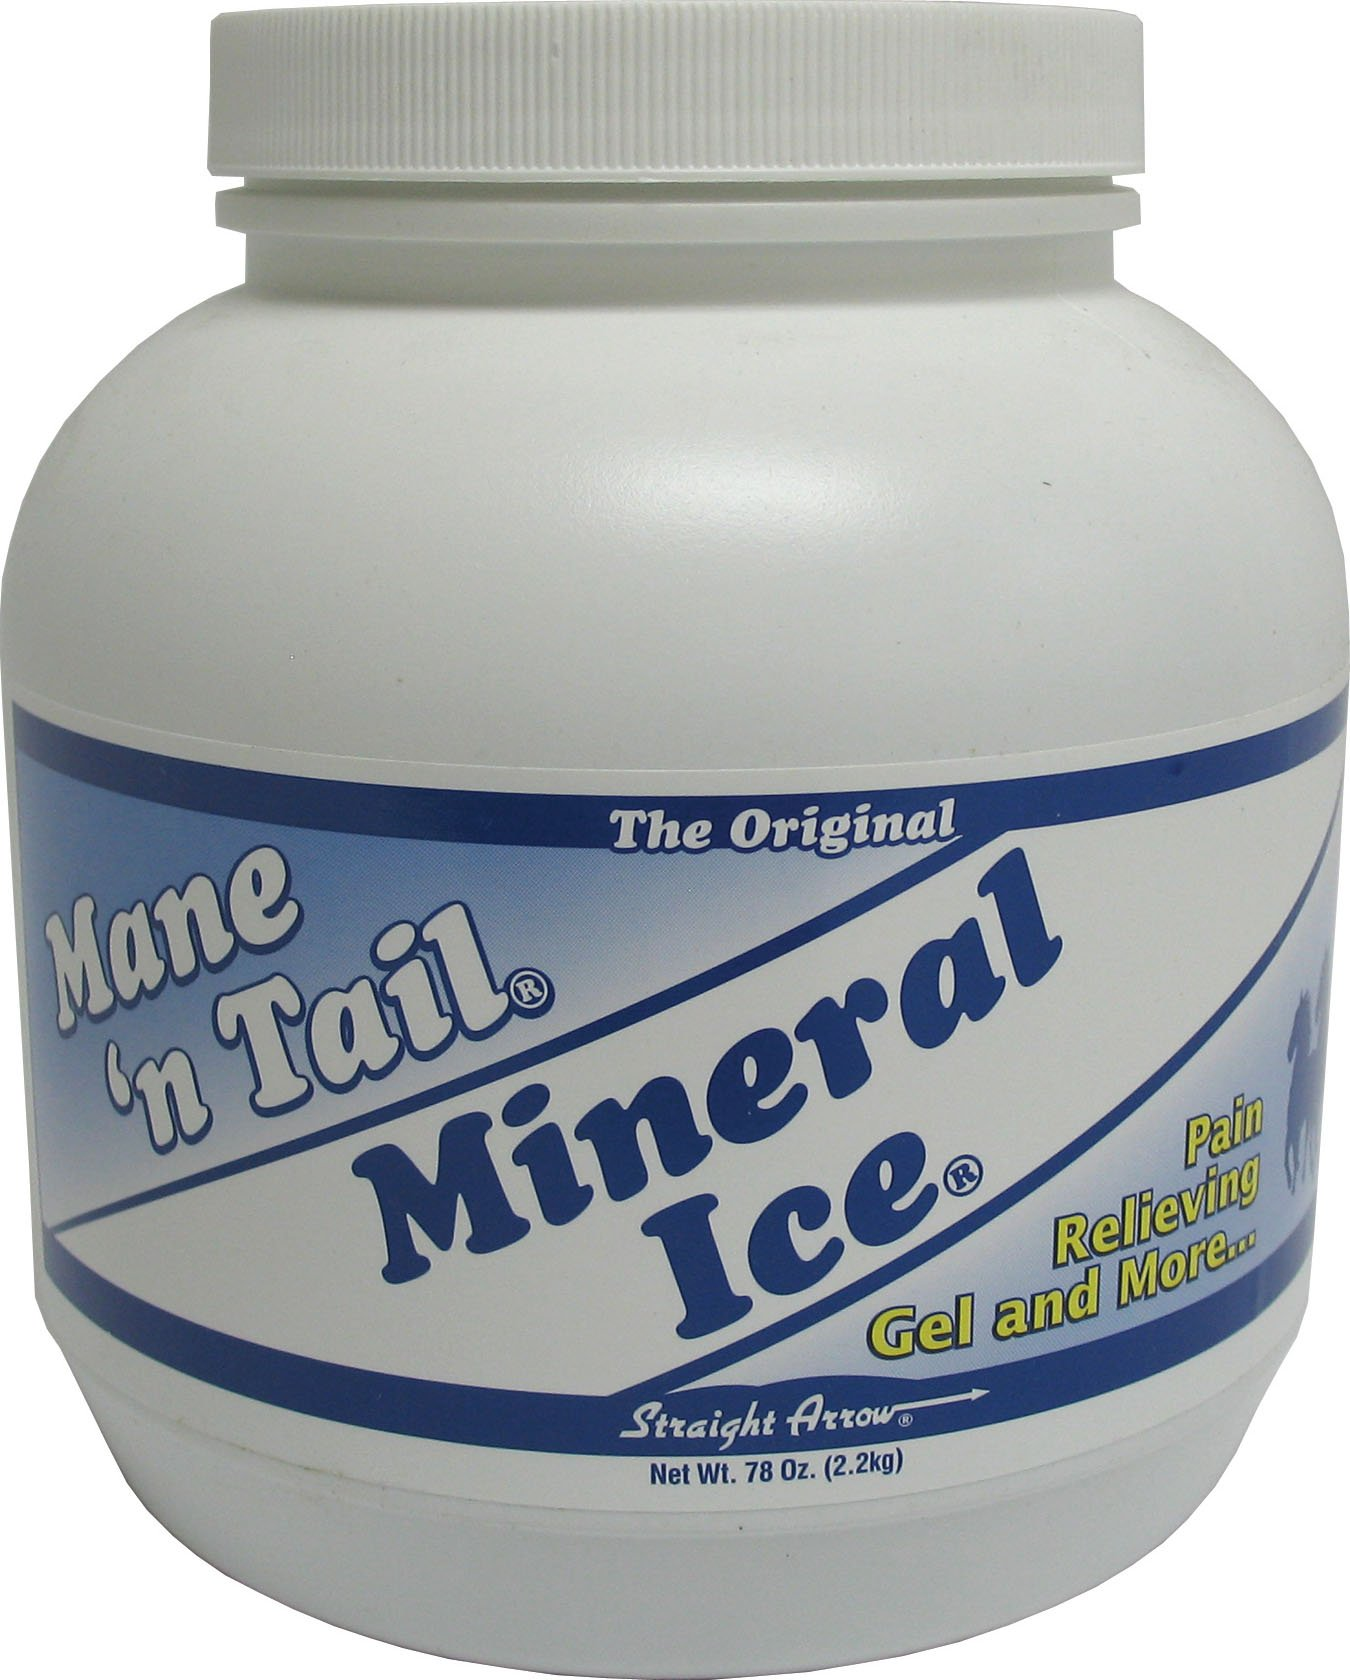 STRAIGHT ARROW Products D Mane 'n Tail Mineral Ice for Horses 5 Pound